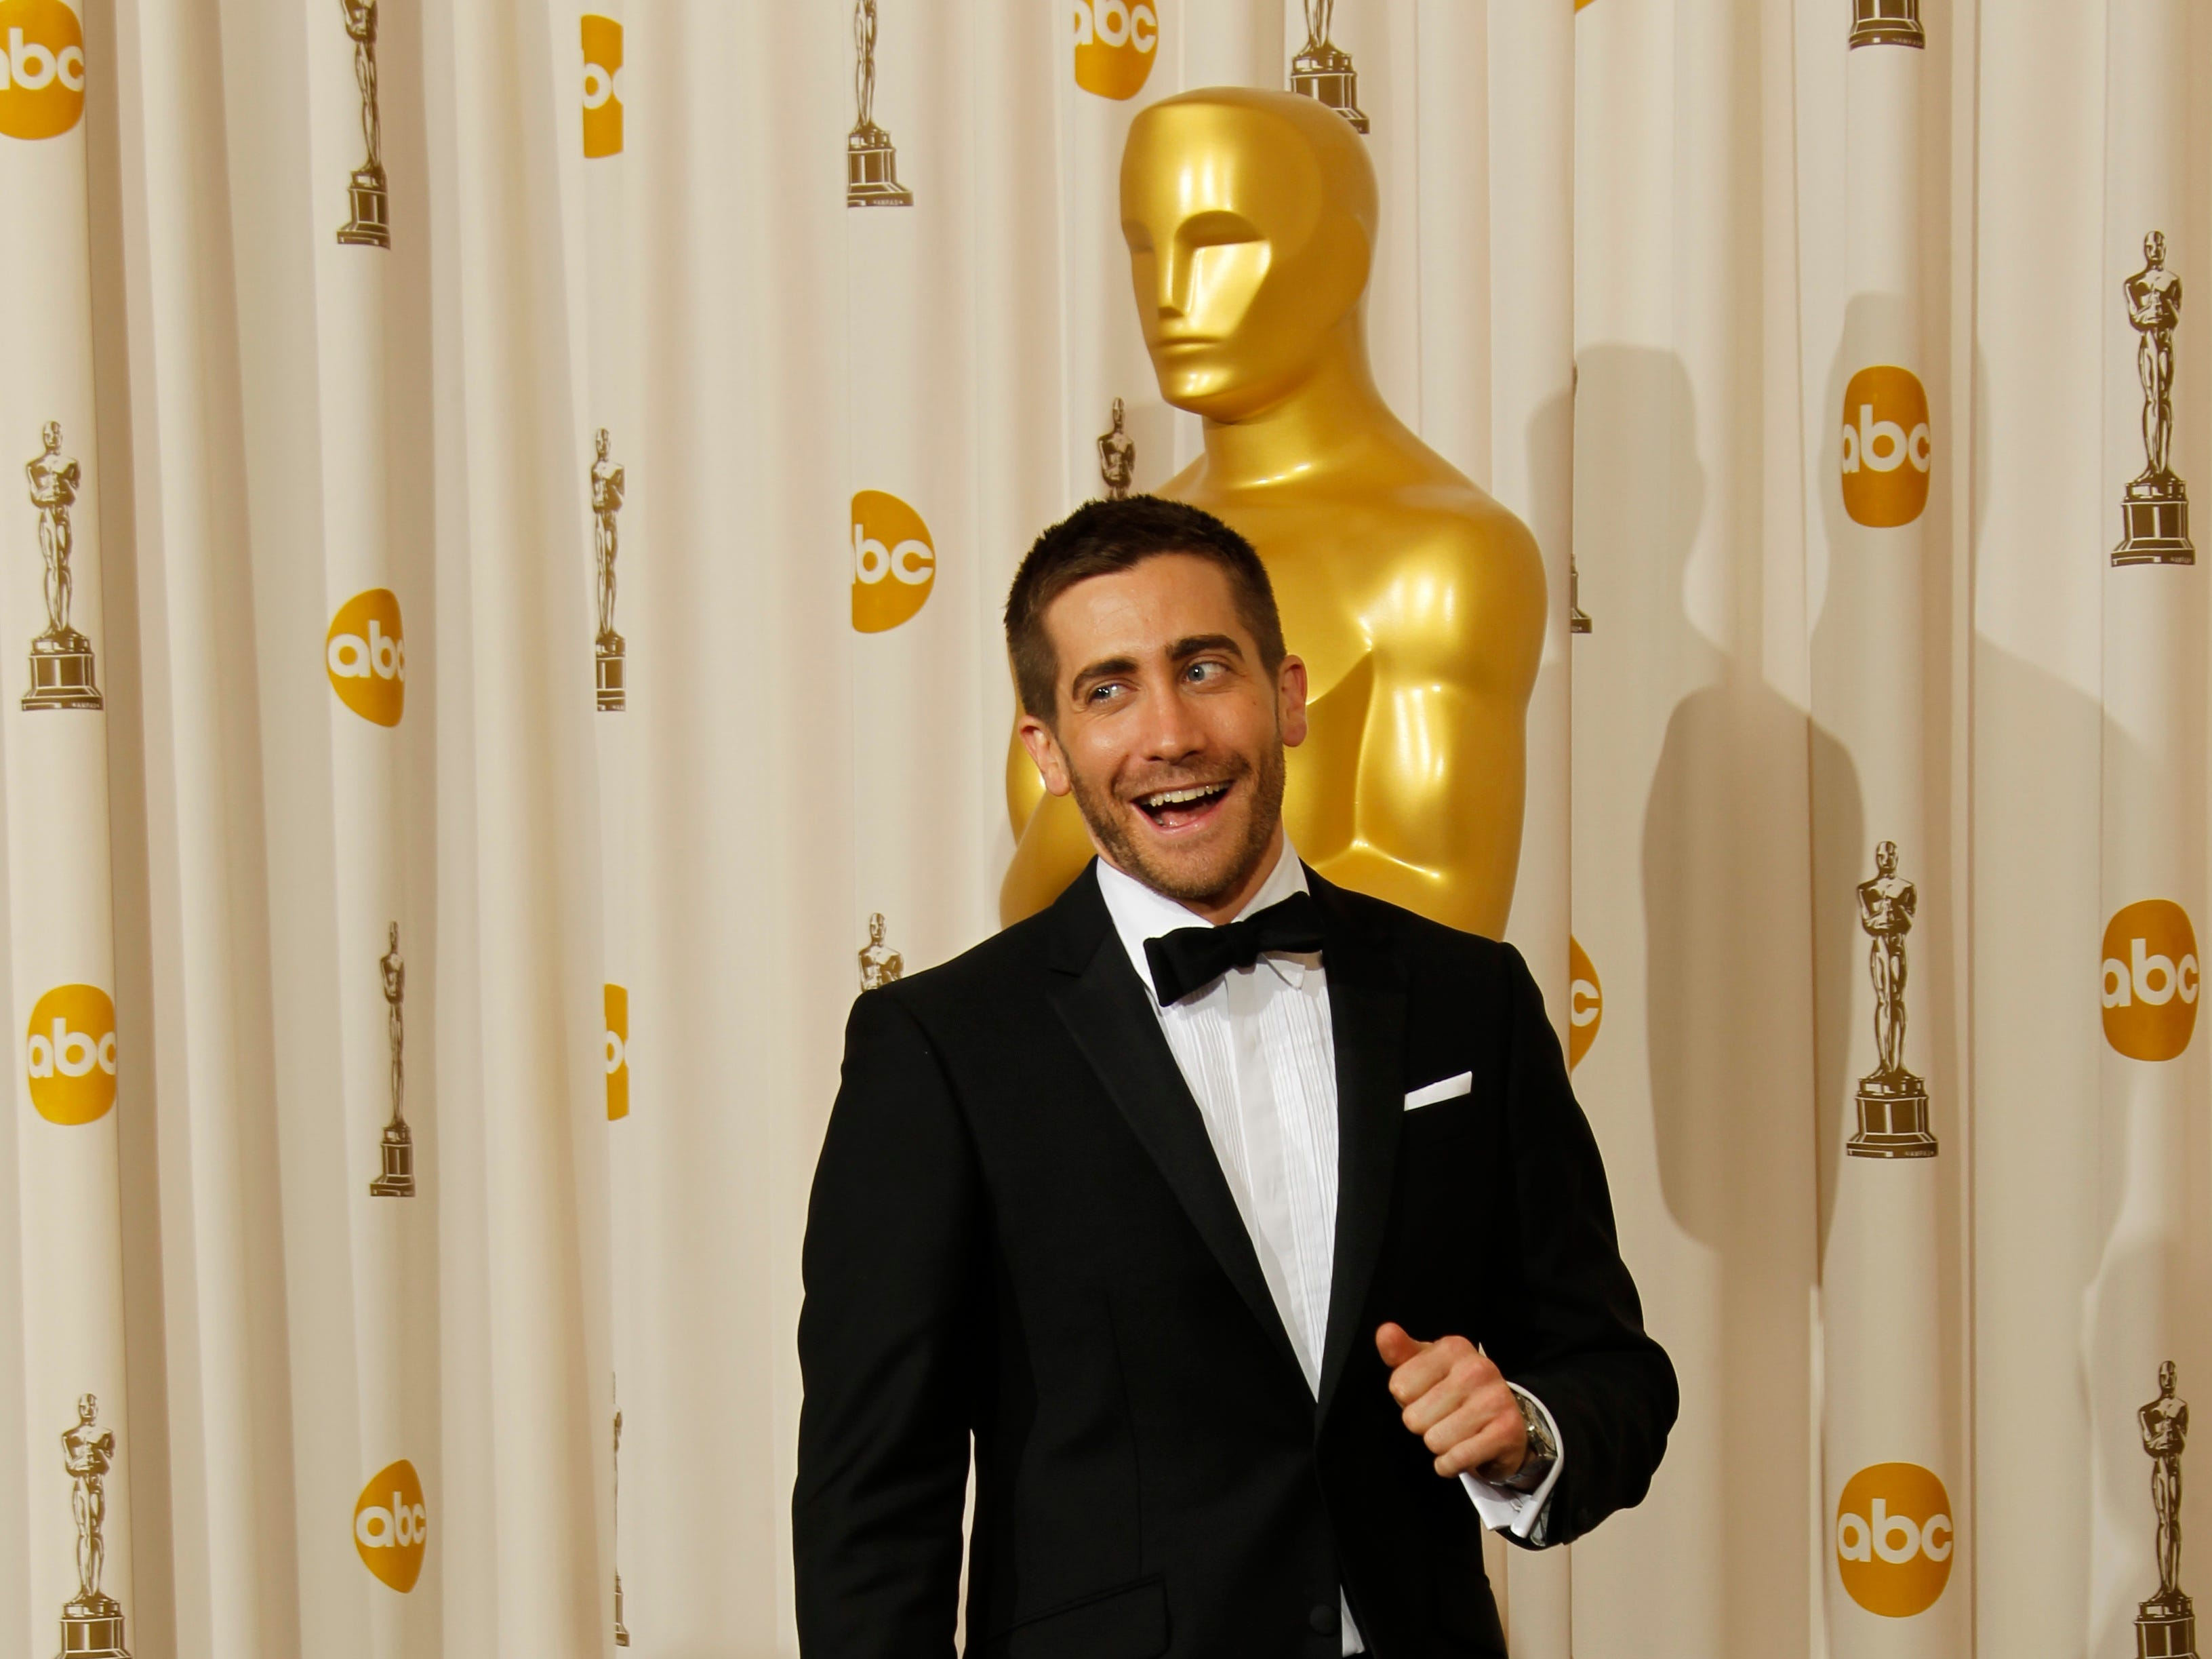 3/7/10 7:23:42 -- Hollywood, CA, U.S.A  -- Jake Gyllenhaal poses in the photo room at the 82nd Annual Academy Awards at the Kodak Theatre. --    Photo by Dan MacMedan, USA TODAY contract photographer   ORG XMIT: DM 38224 OSCARS 3/3/2010  (Via MerlinFTP Drop)